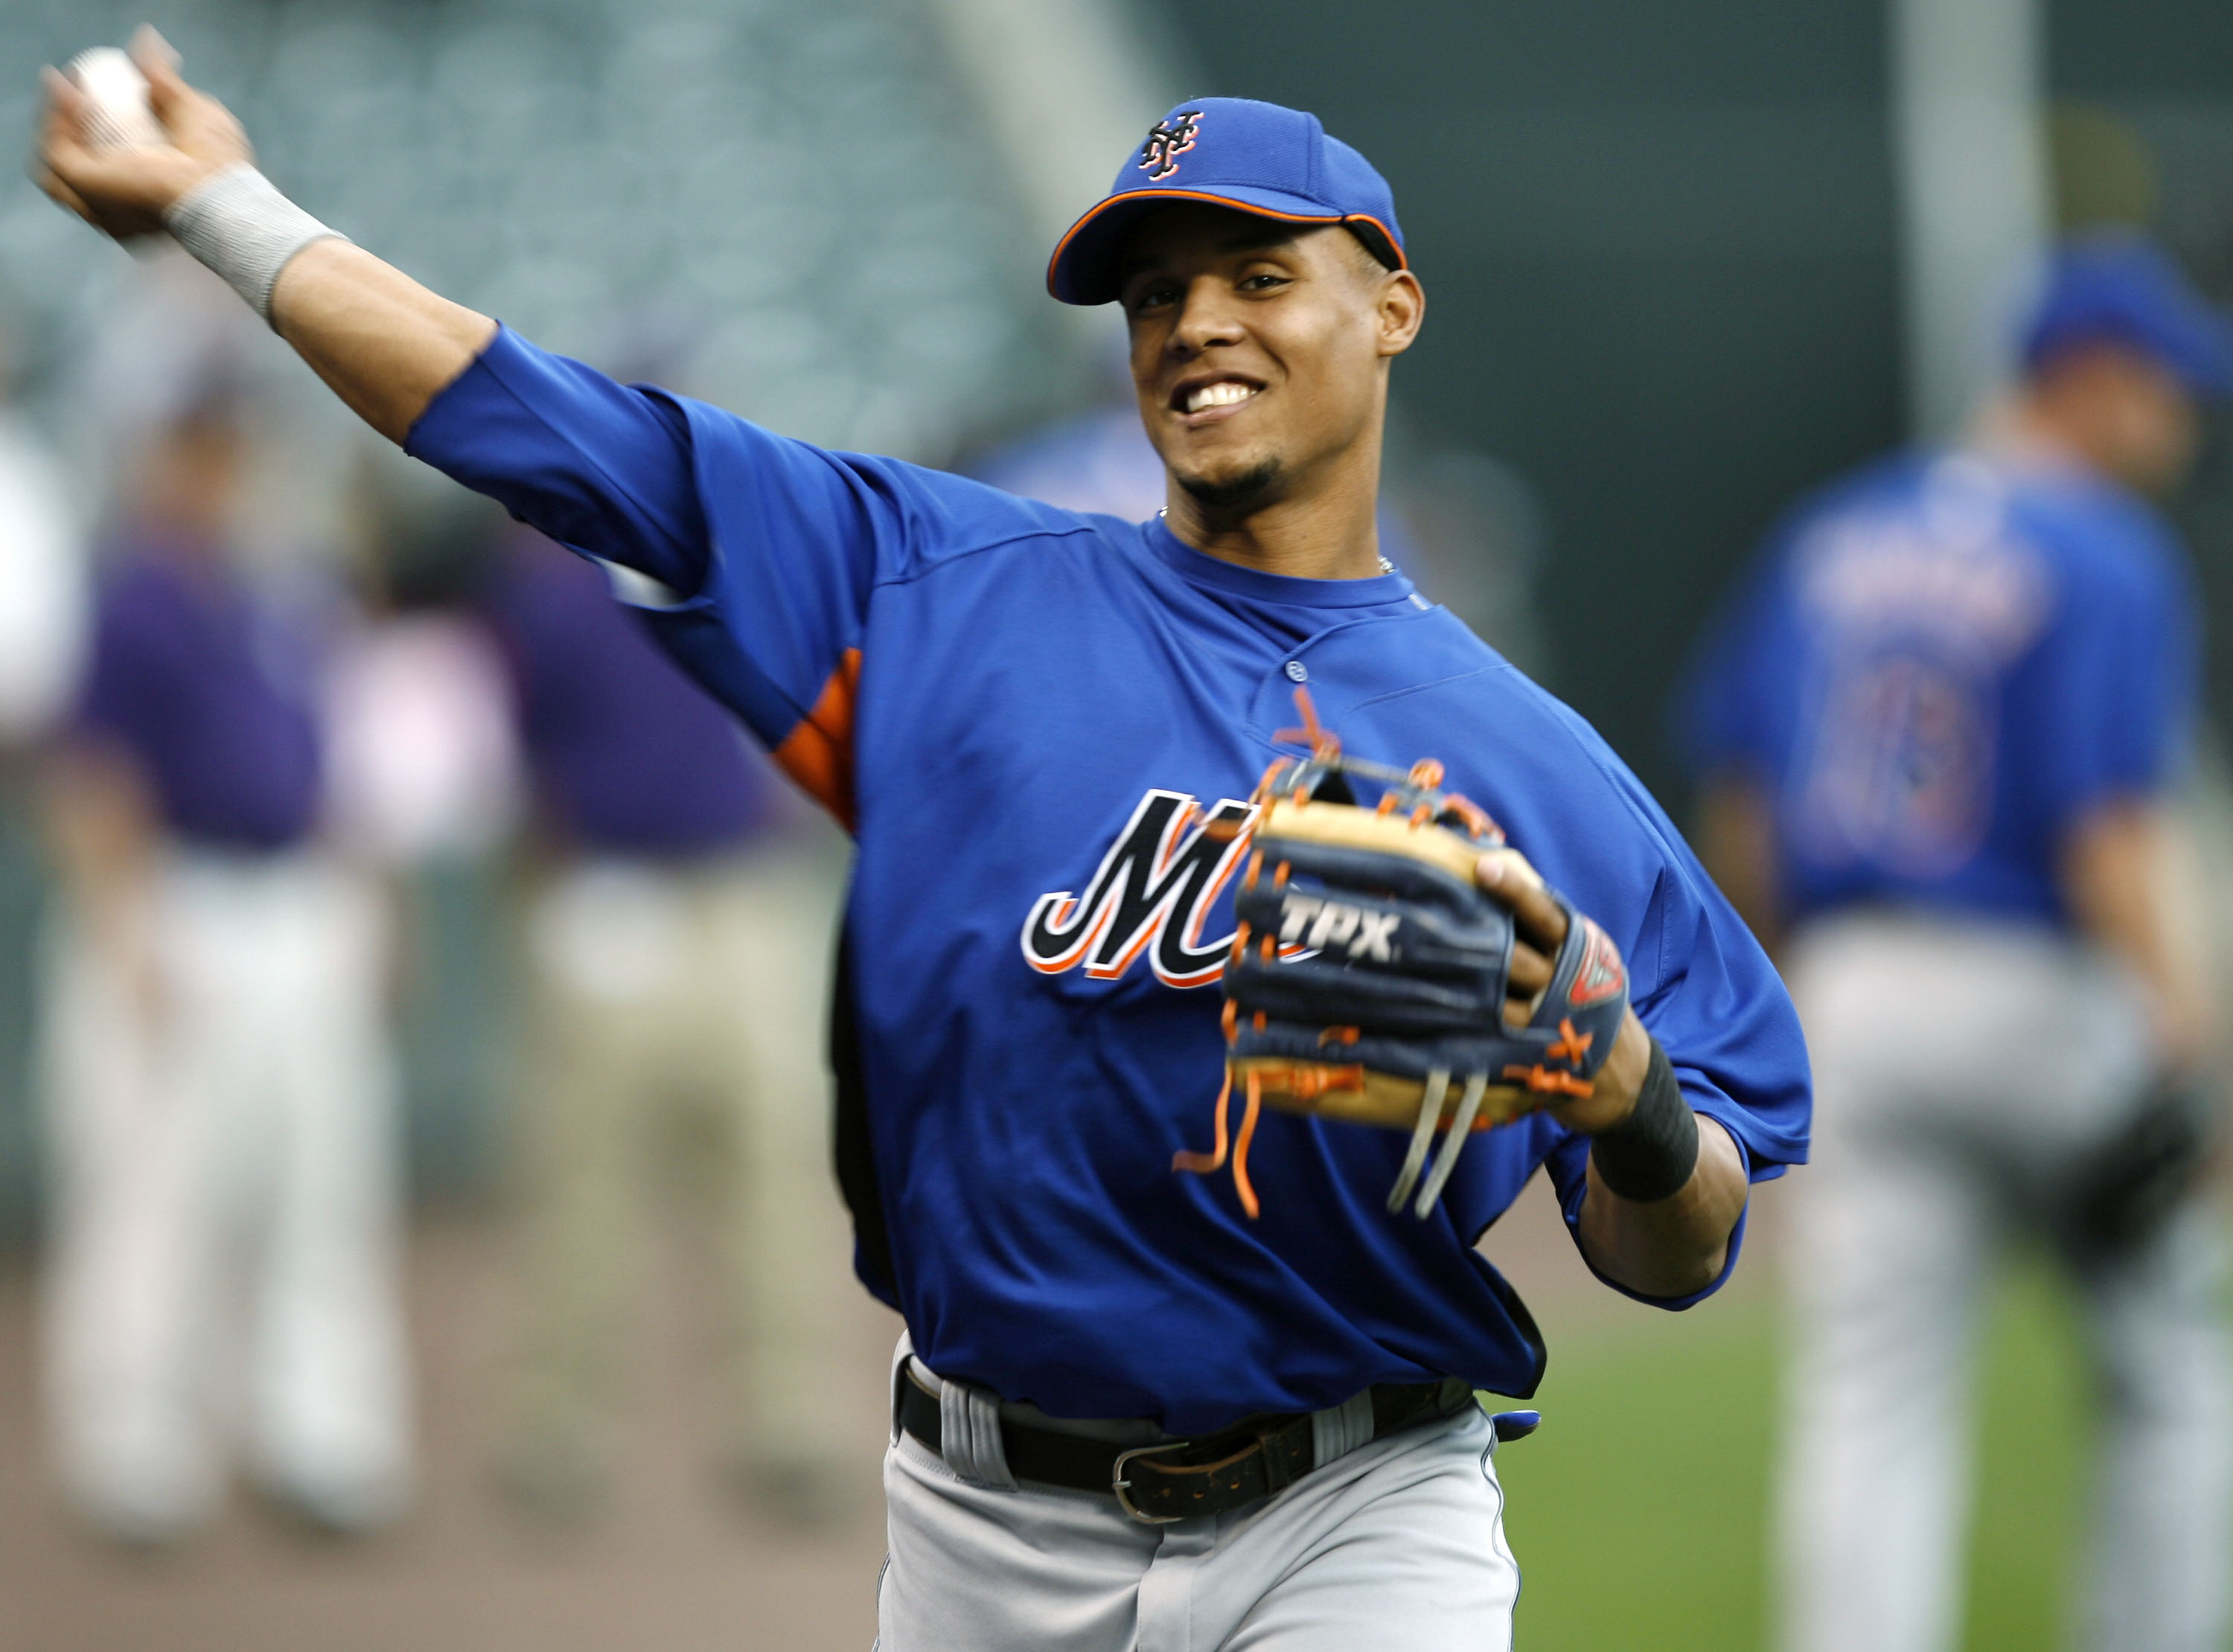 New York Mets left fielder Carlos Gomez throws the ball during the team's batting practice before playing the Colorado Rockies in a Major League Baseball game in Denver on Tuesday, July 3, 2007. (AP Photo/David Zalubowski)